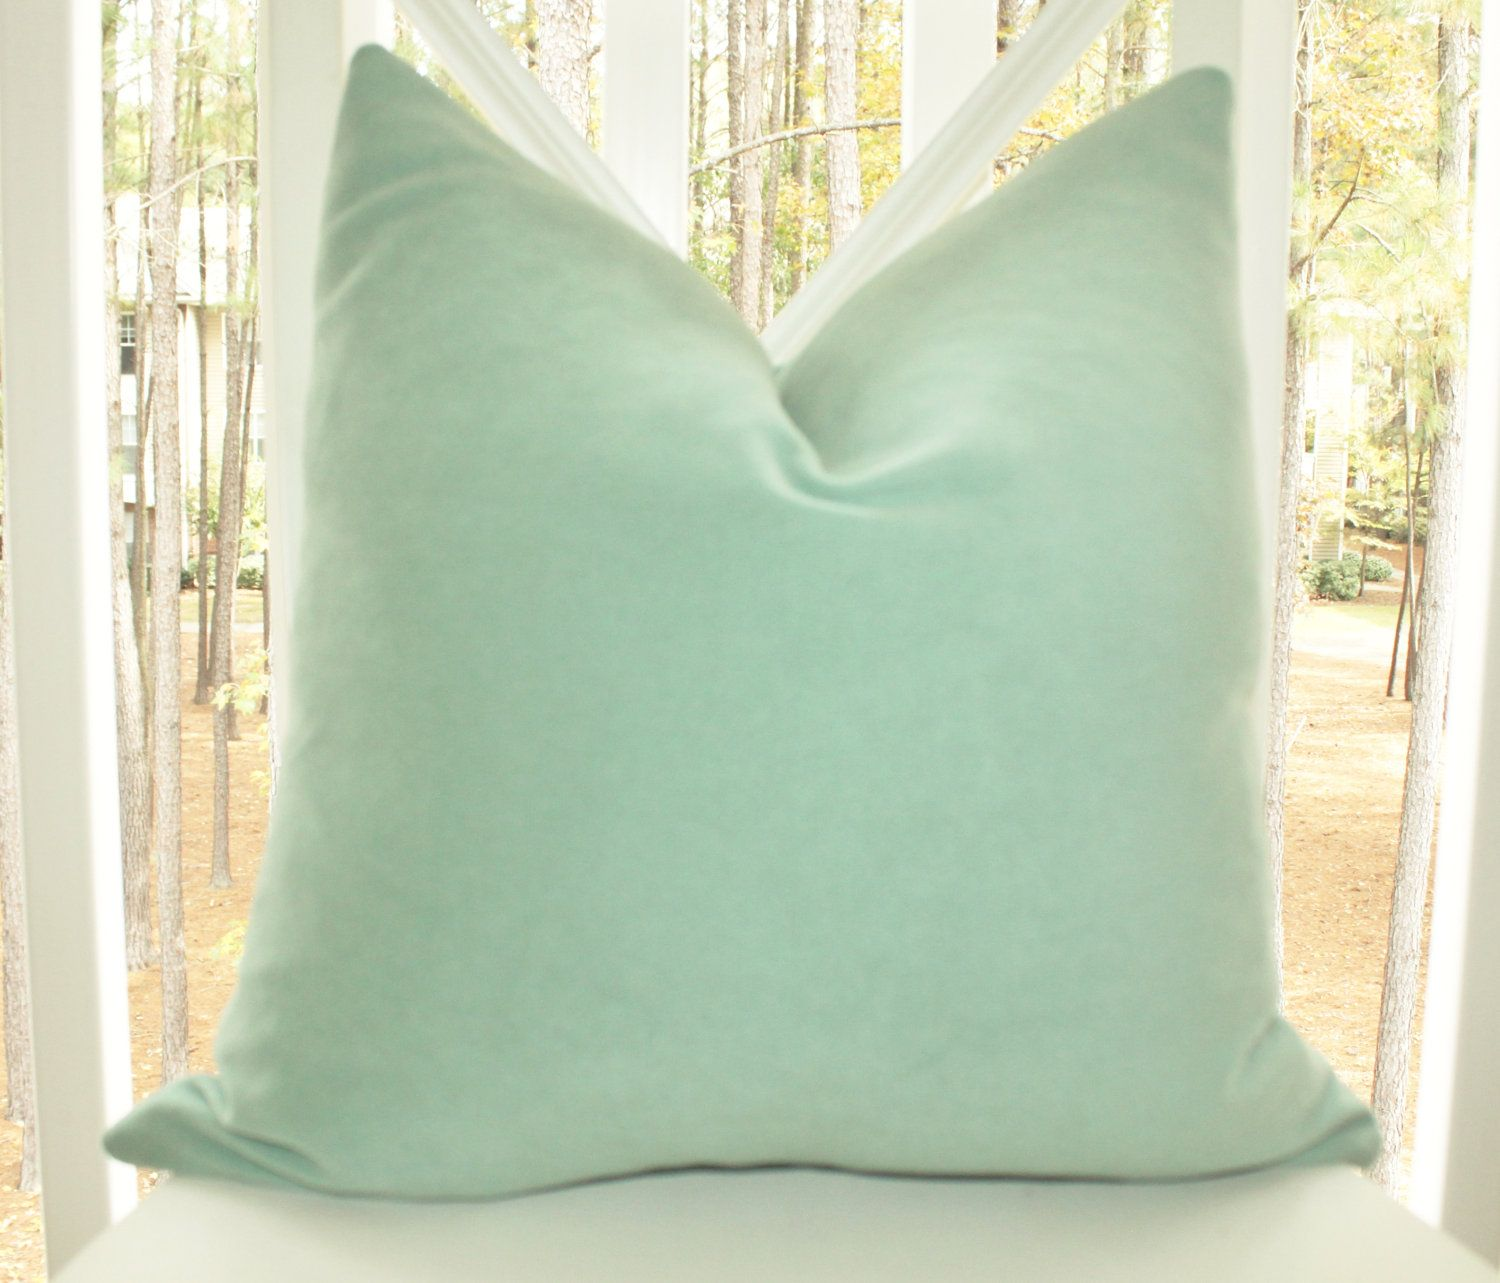 Decorative Mint Green Pillow - 15 x 15 Sea Foam Green Velvet ...